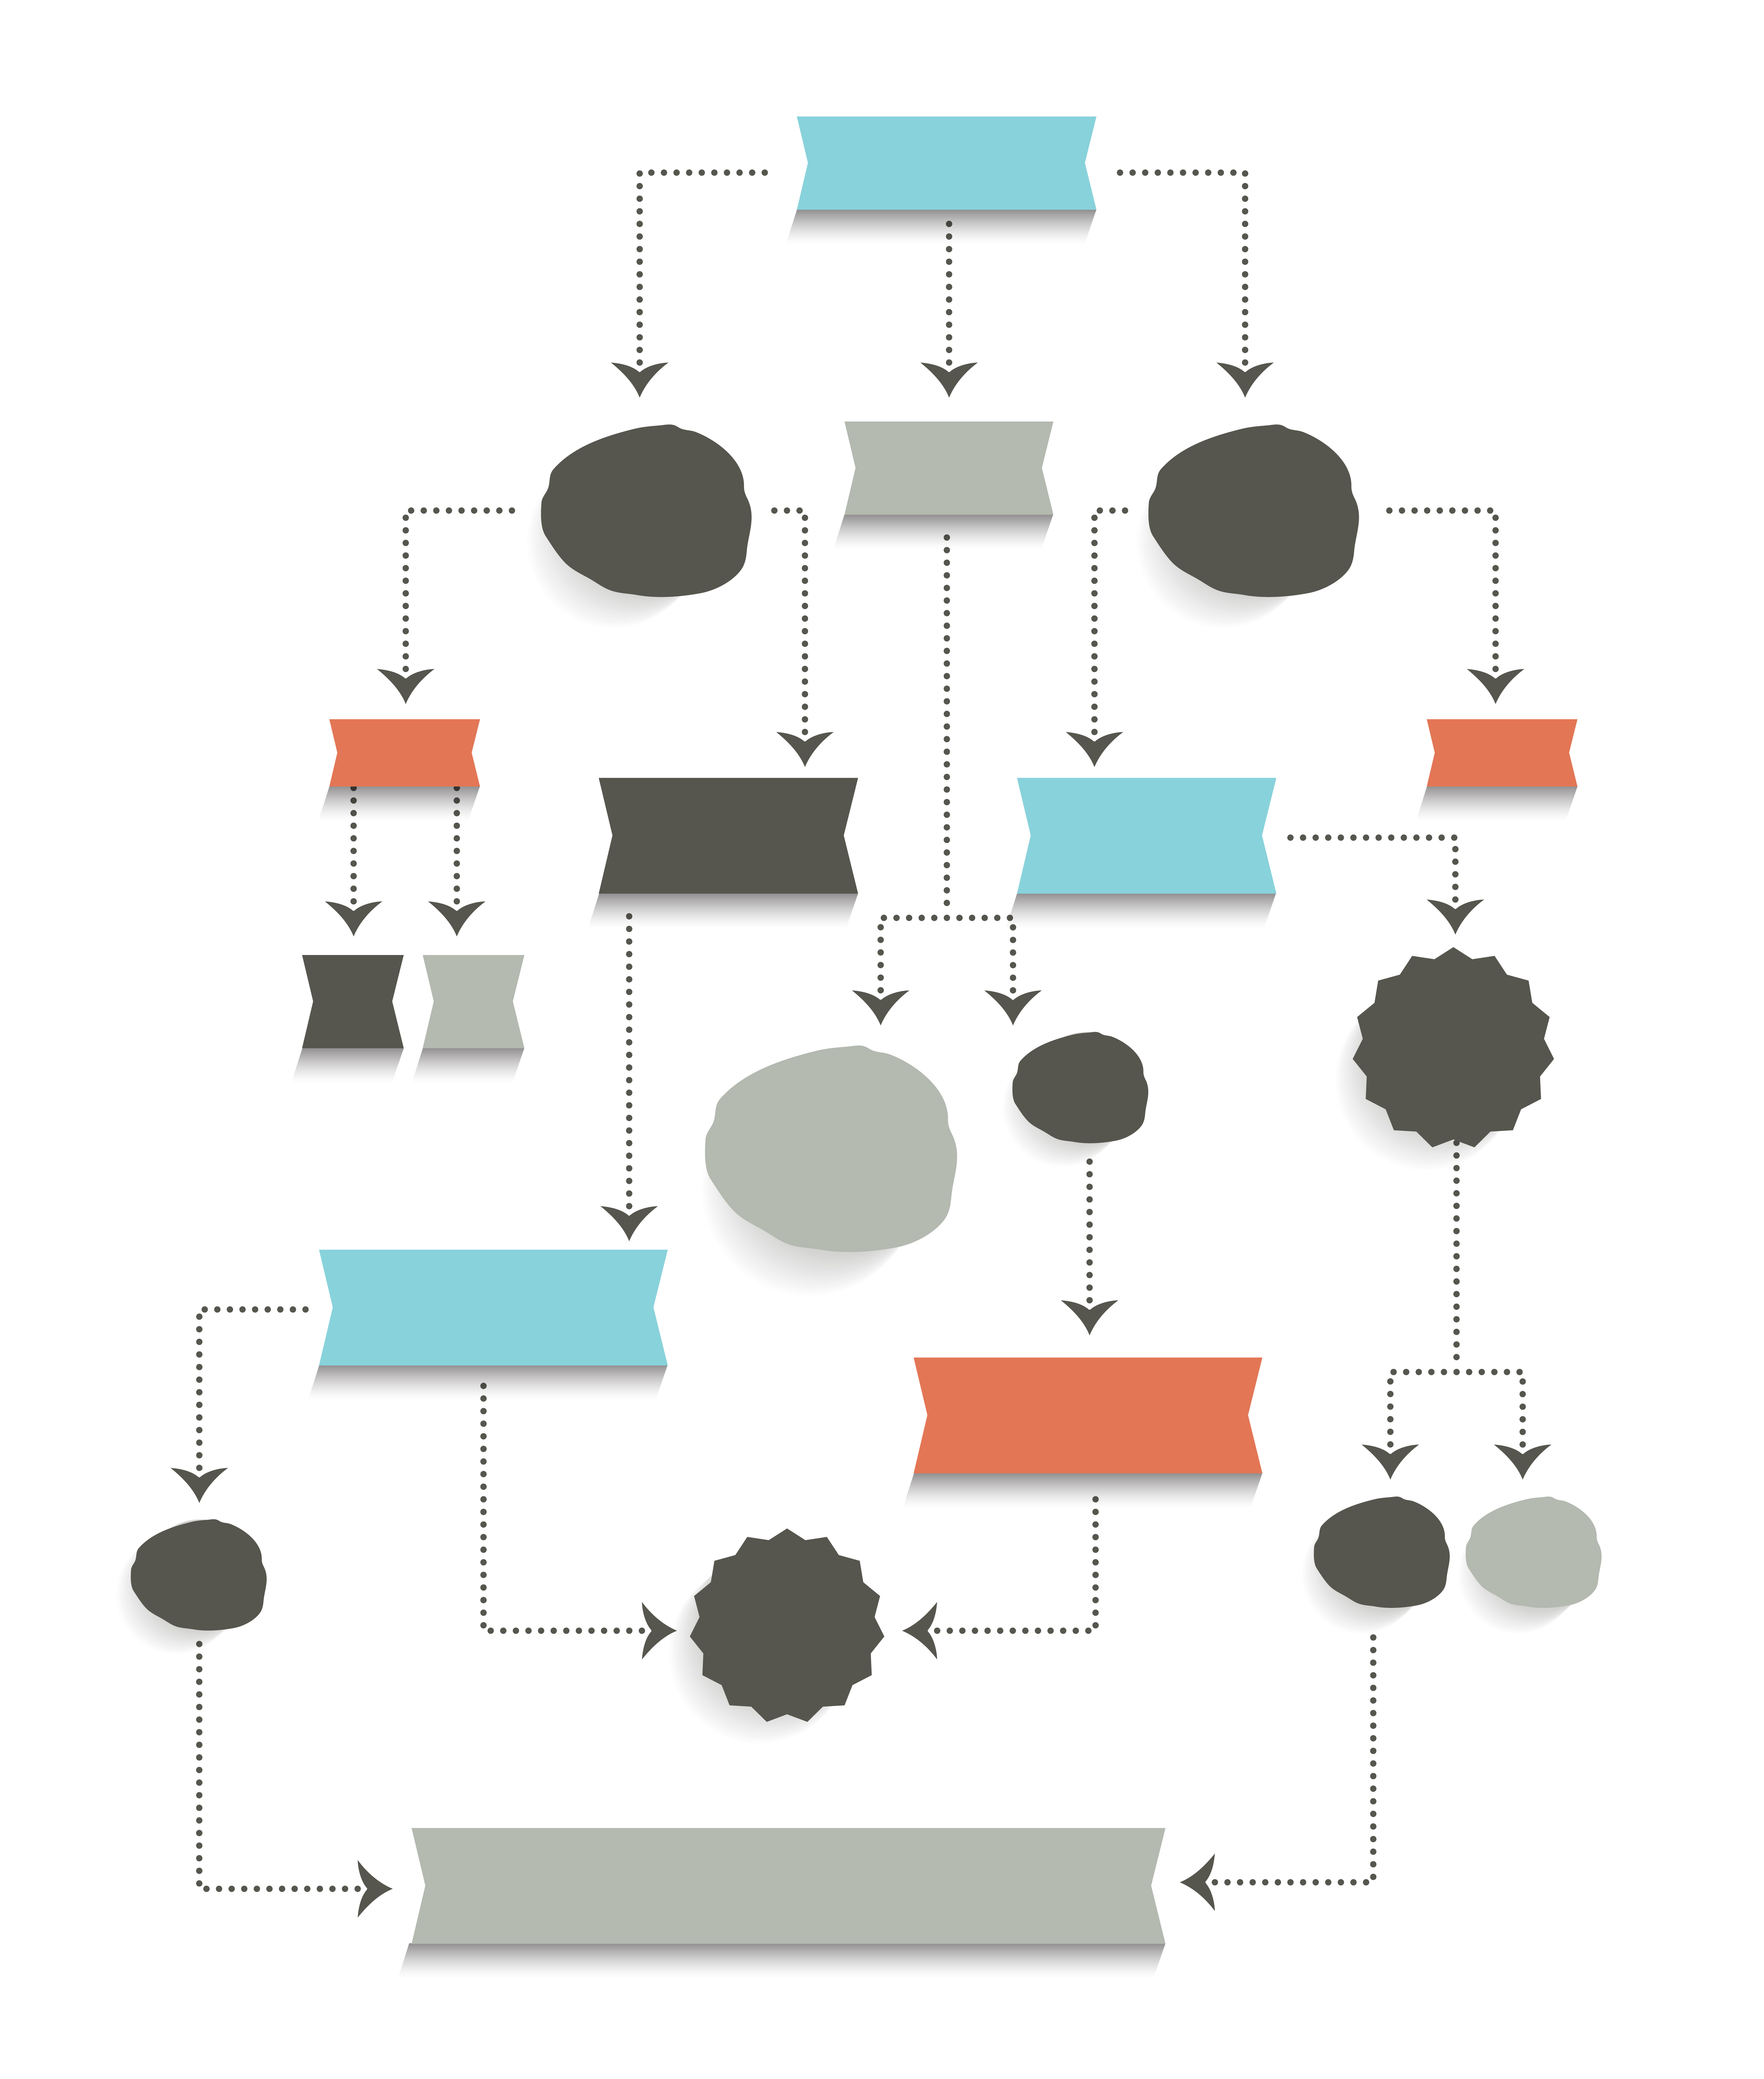 Multi-color illustration of a multi-step workflow within an organization.